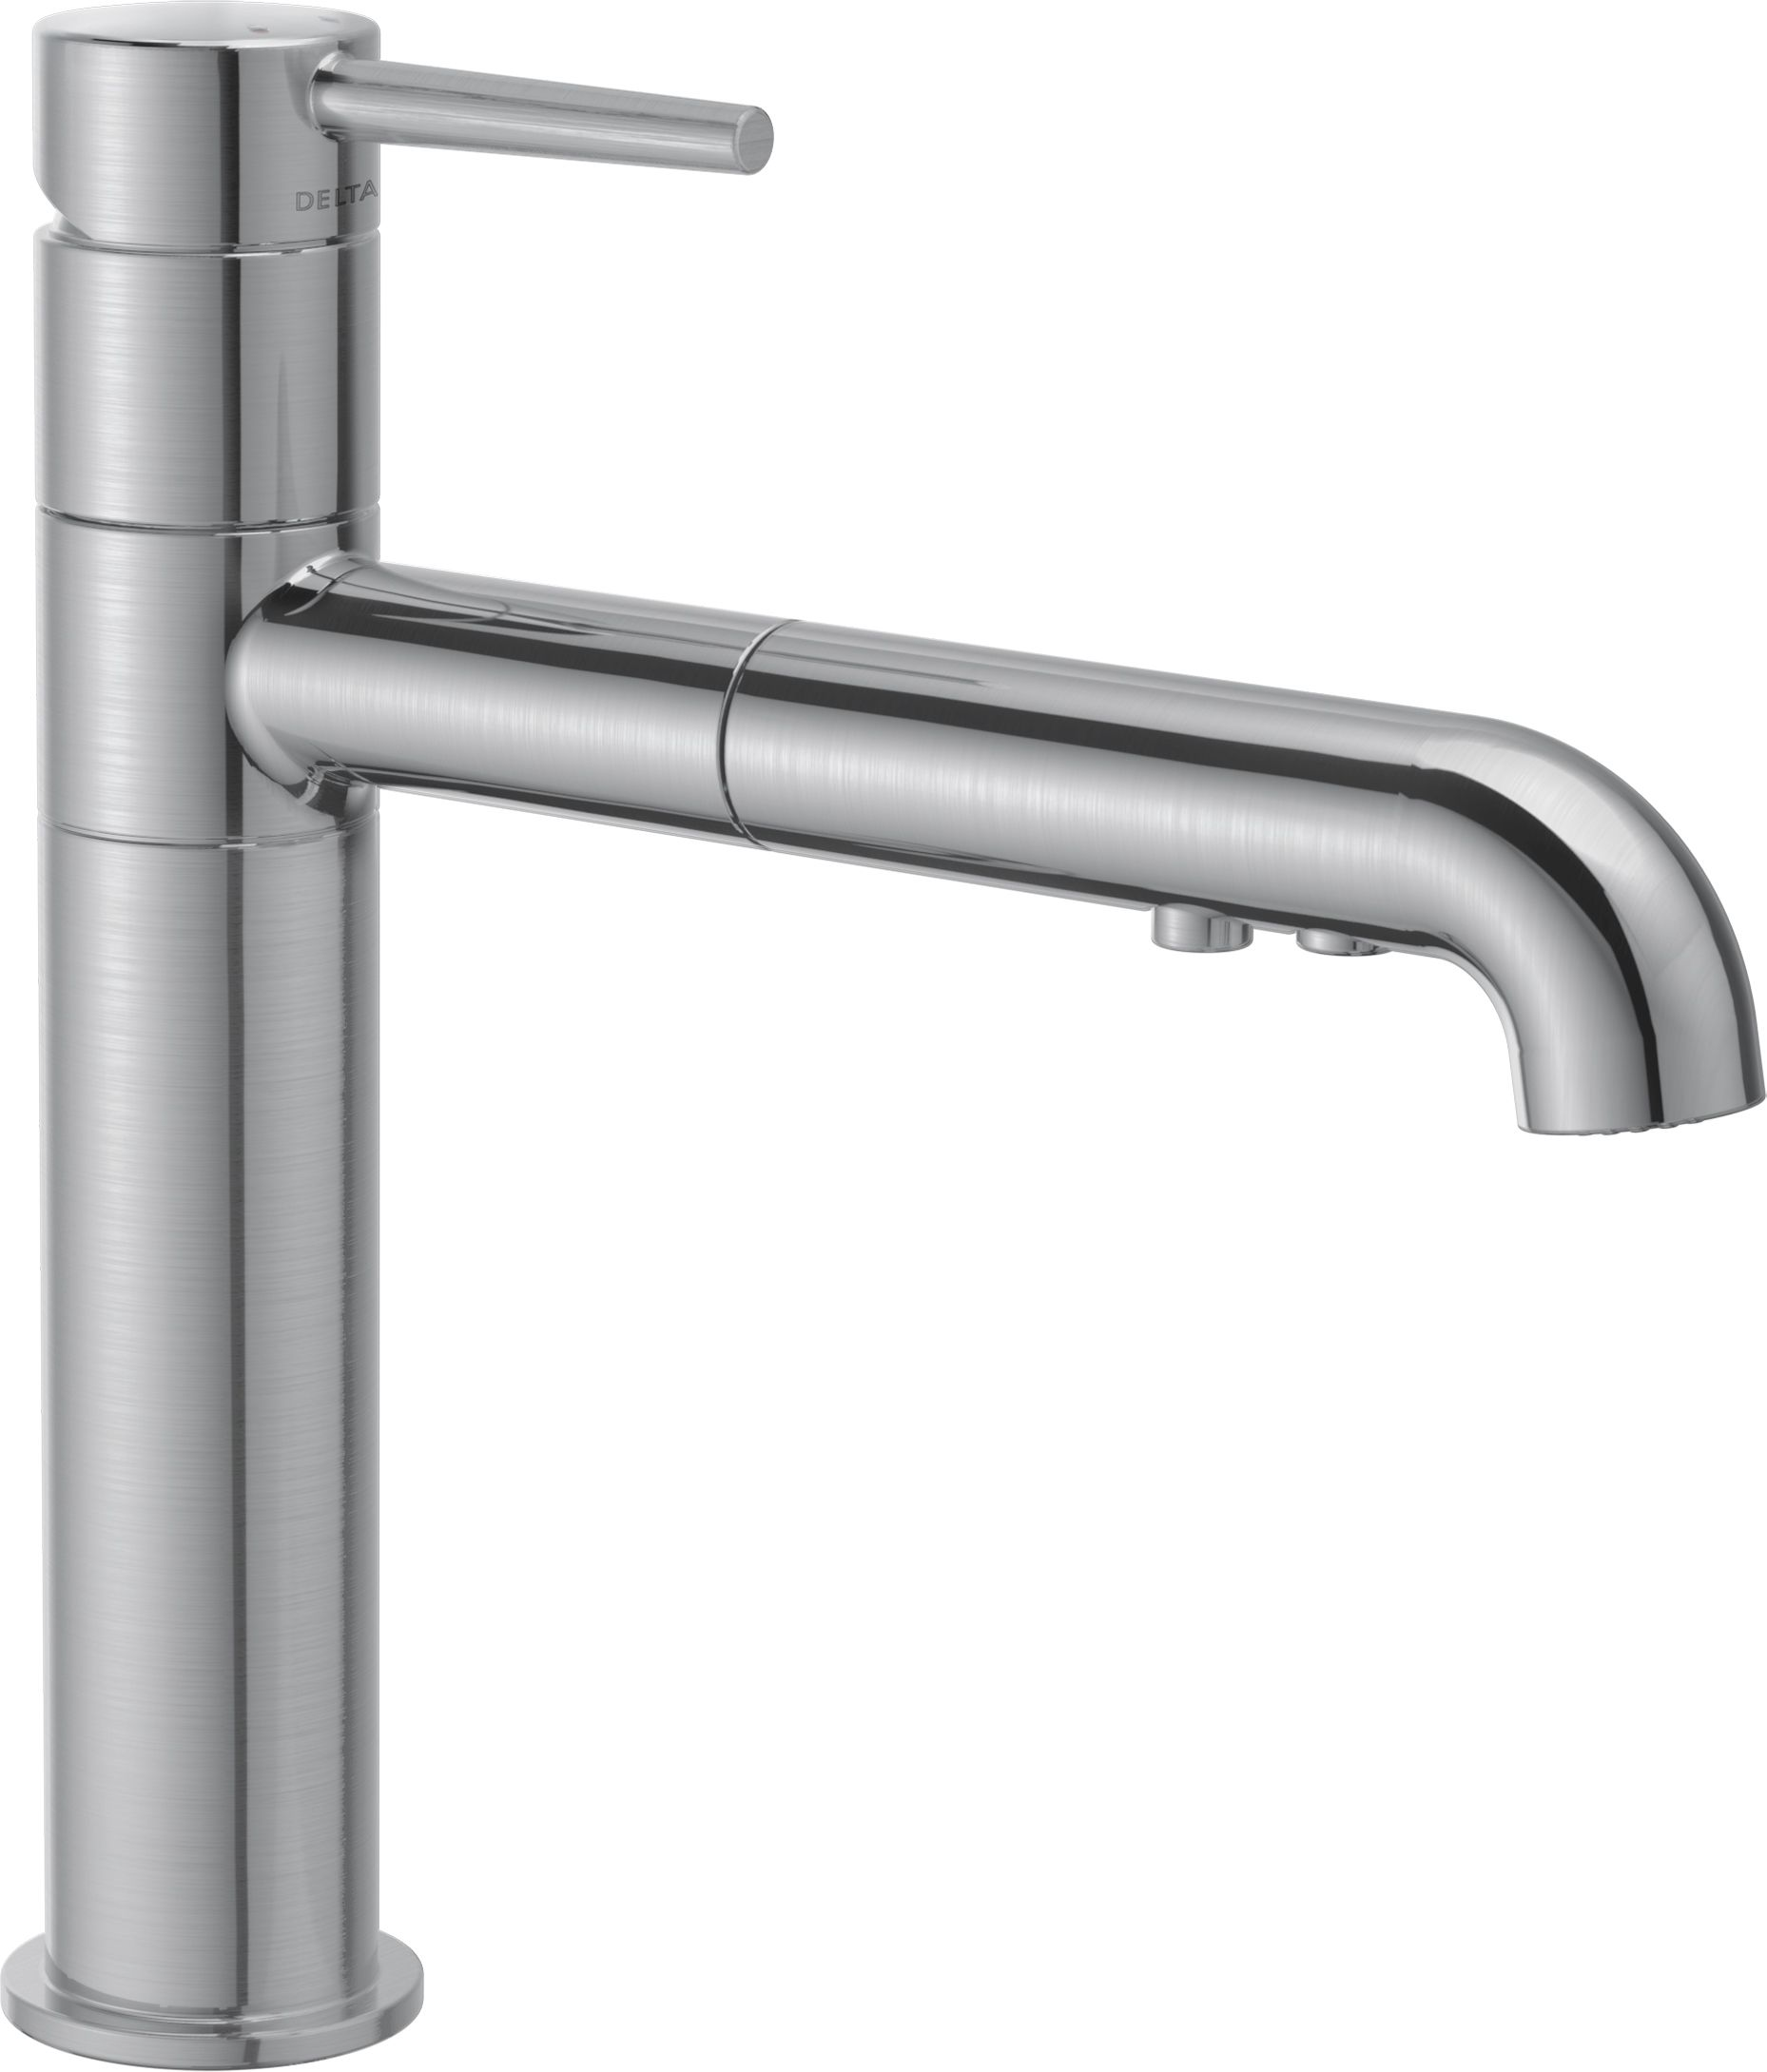 bath brand kitchen elegant htm faucet the and delta faucets dlt